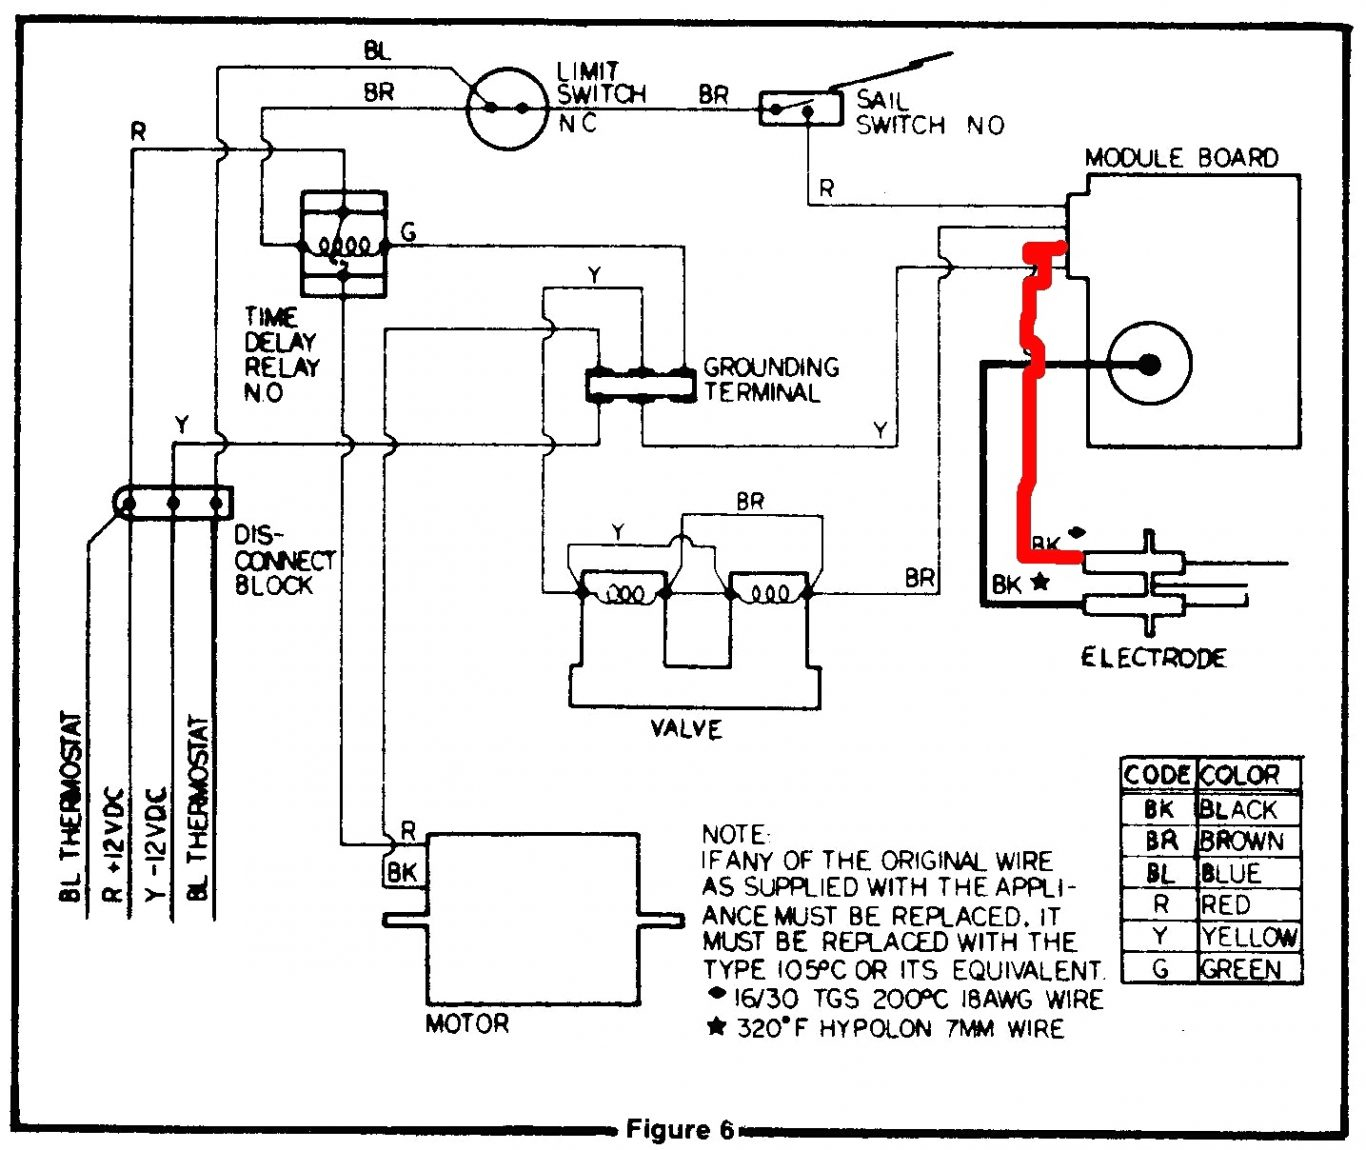 coleman evcon wiring diagram thermostat narva flasher download inspirational mach thermostating